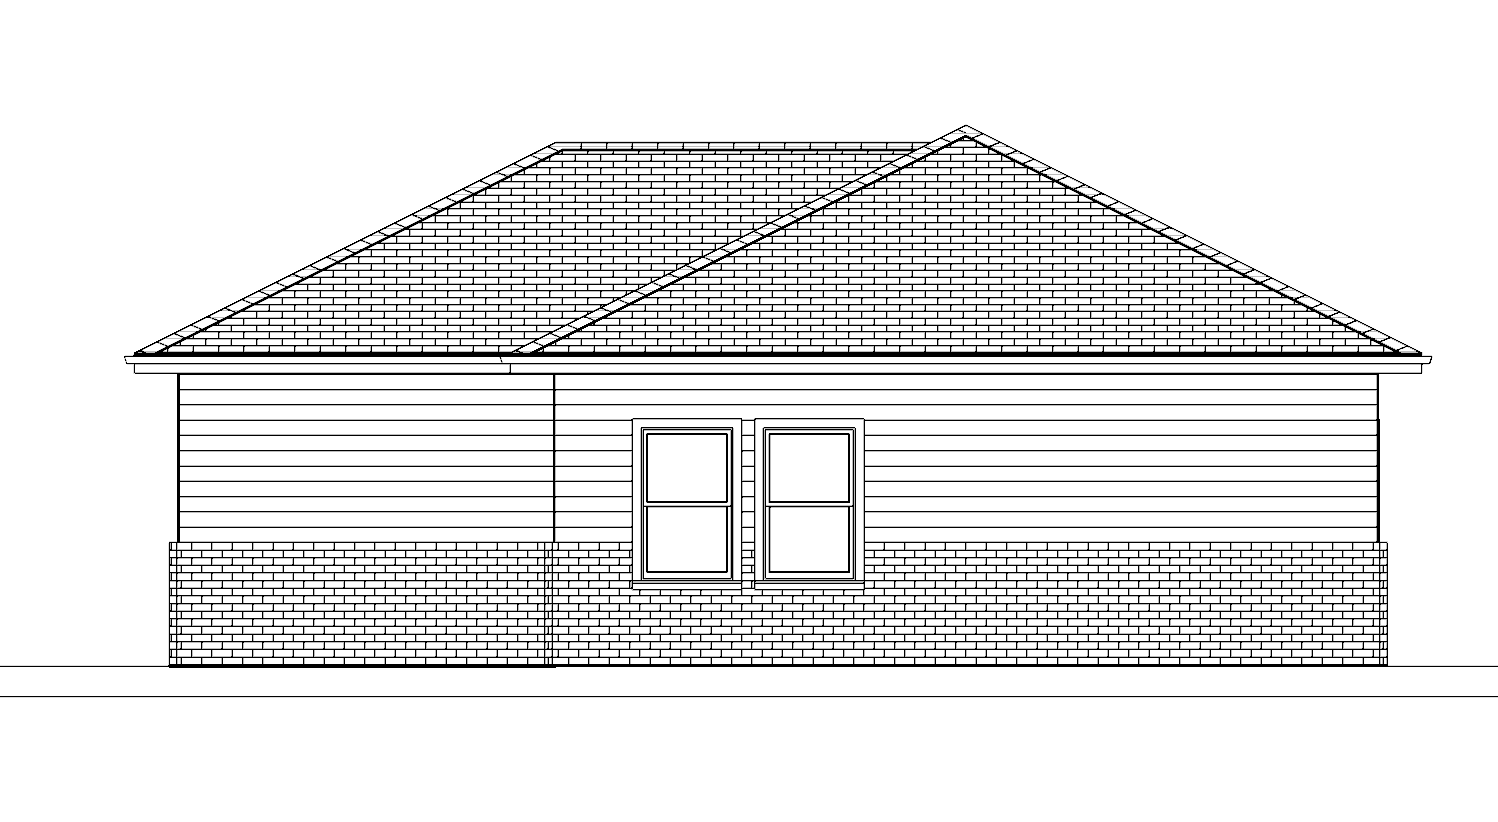 Plan No. 1060_BK ELEVATION